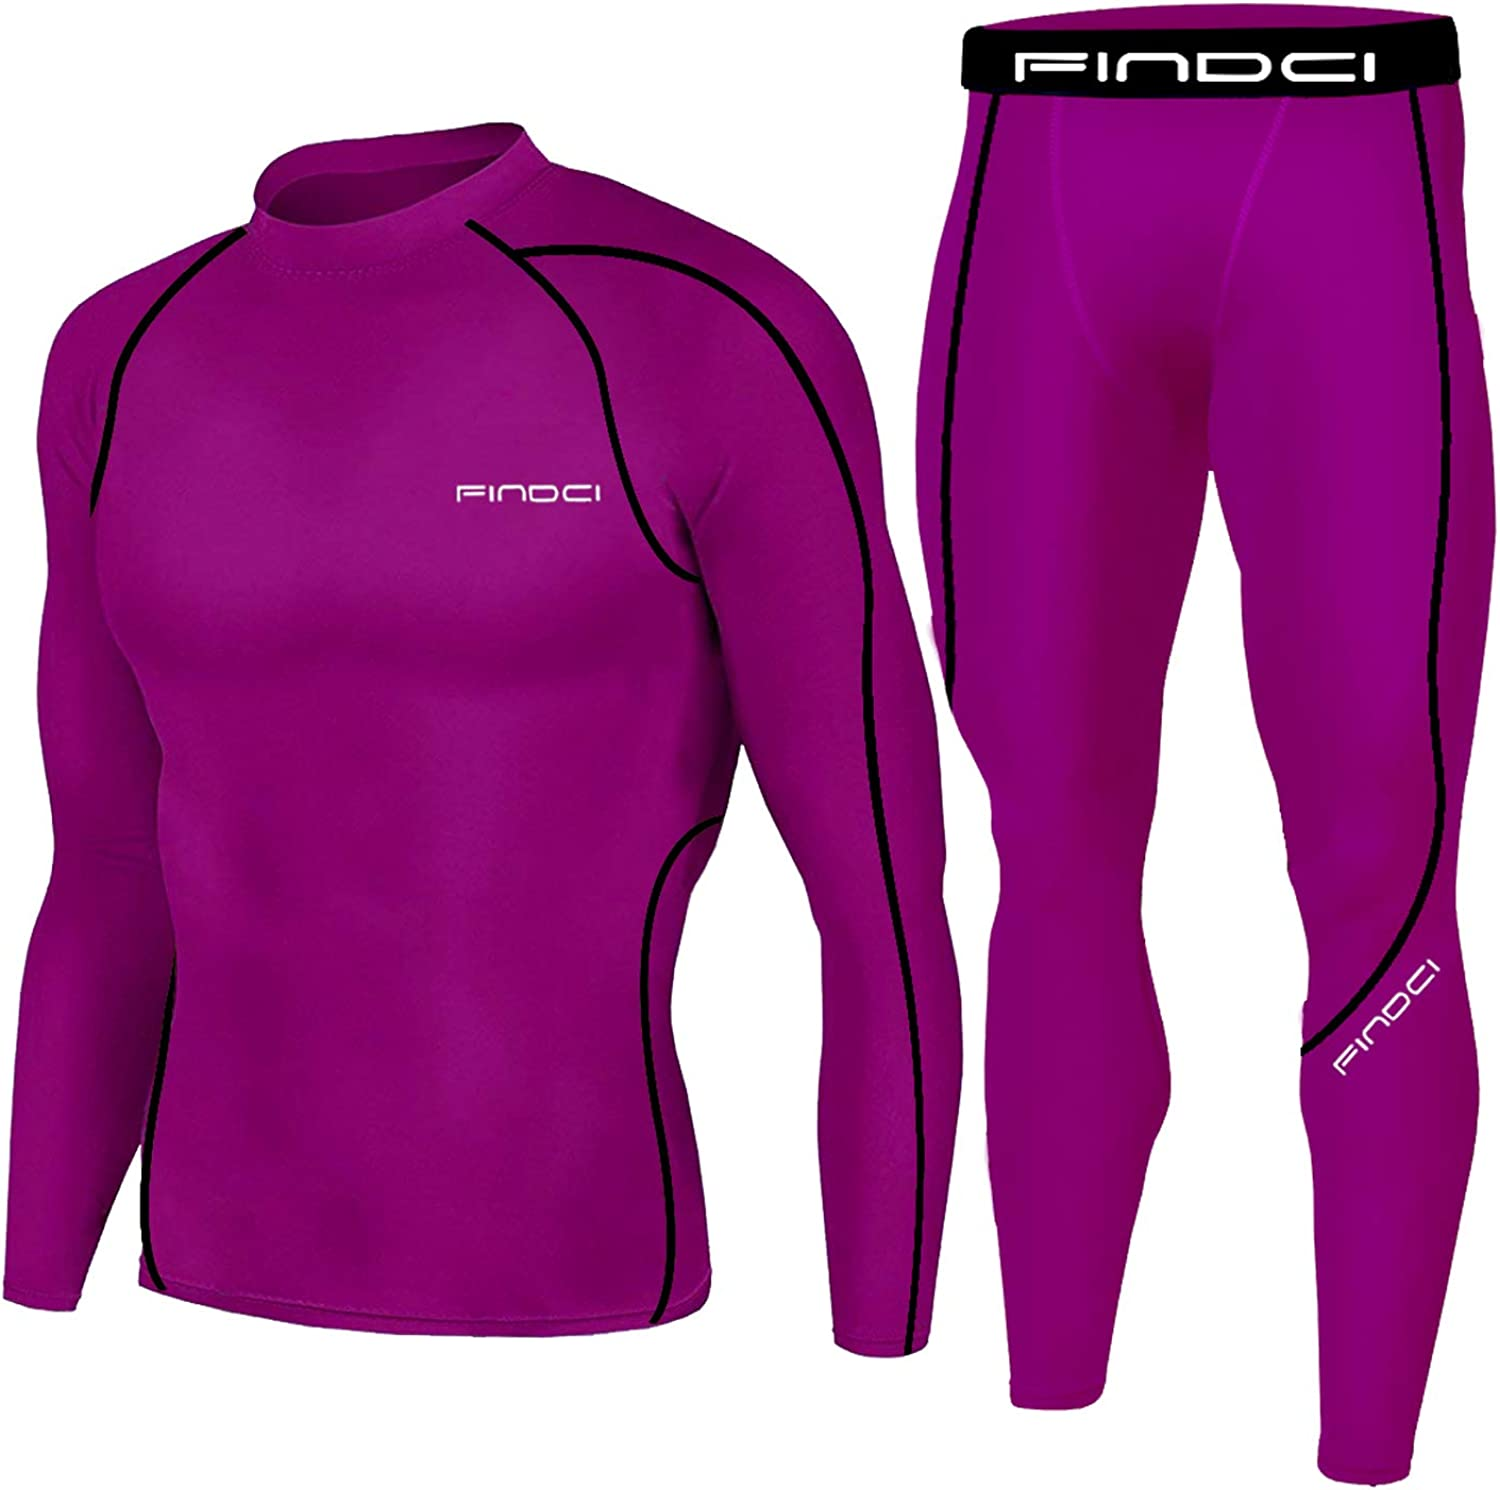 KBOO-Dark Purple, XL Pants Skin-Tight Long Sleeves Quick Dry Fitness Tracksuit Gym Yoga Suits 1Bests Mens Sports Running Set Compression Shirt